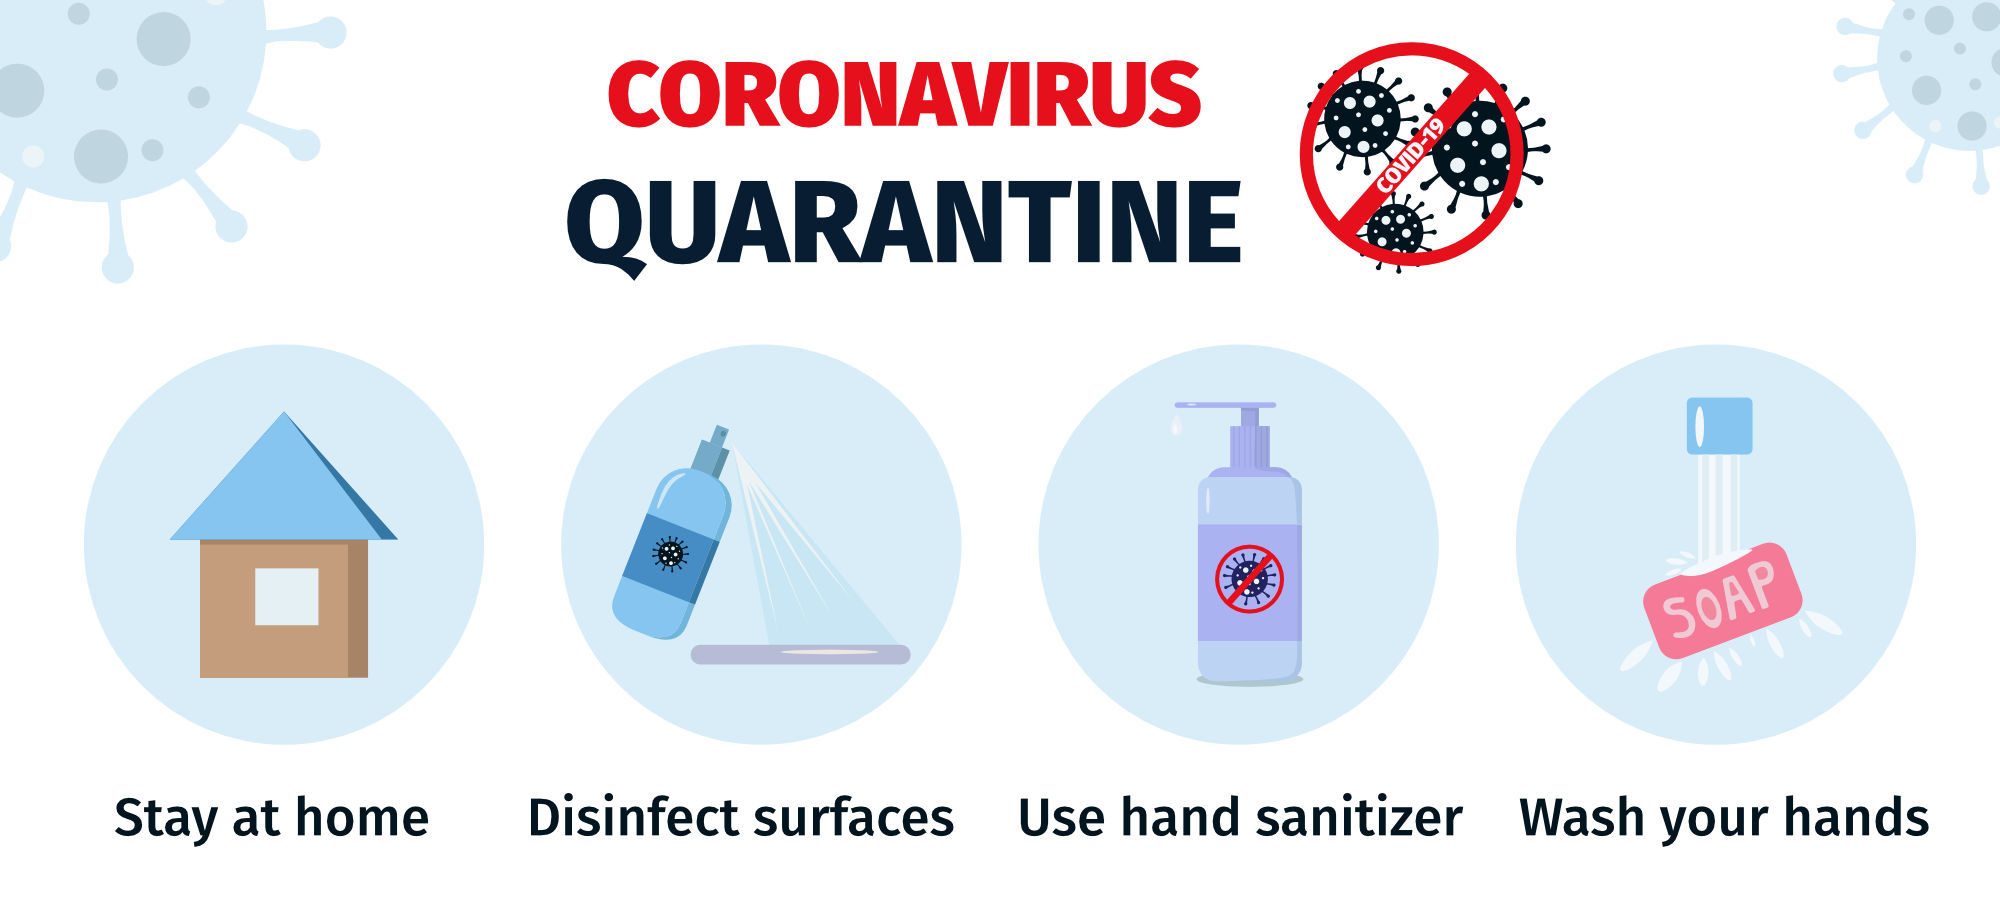 COVID-19 Quarantine Safety